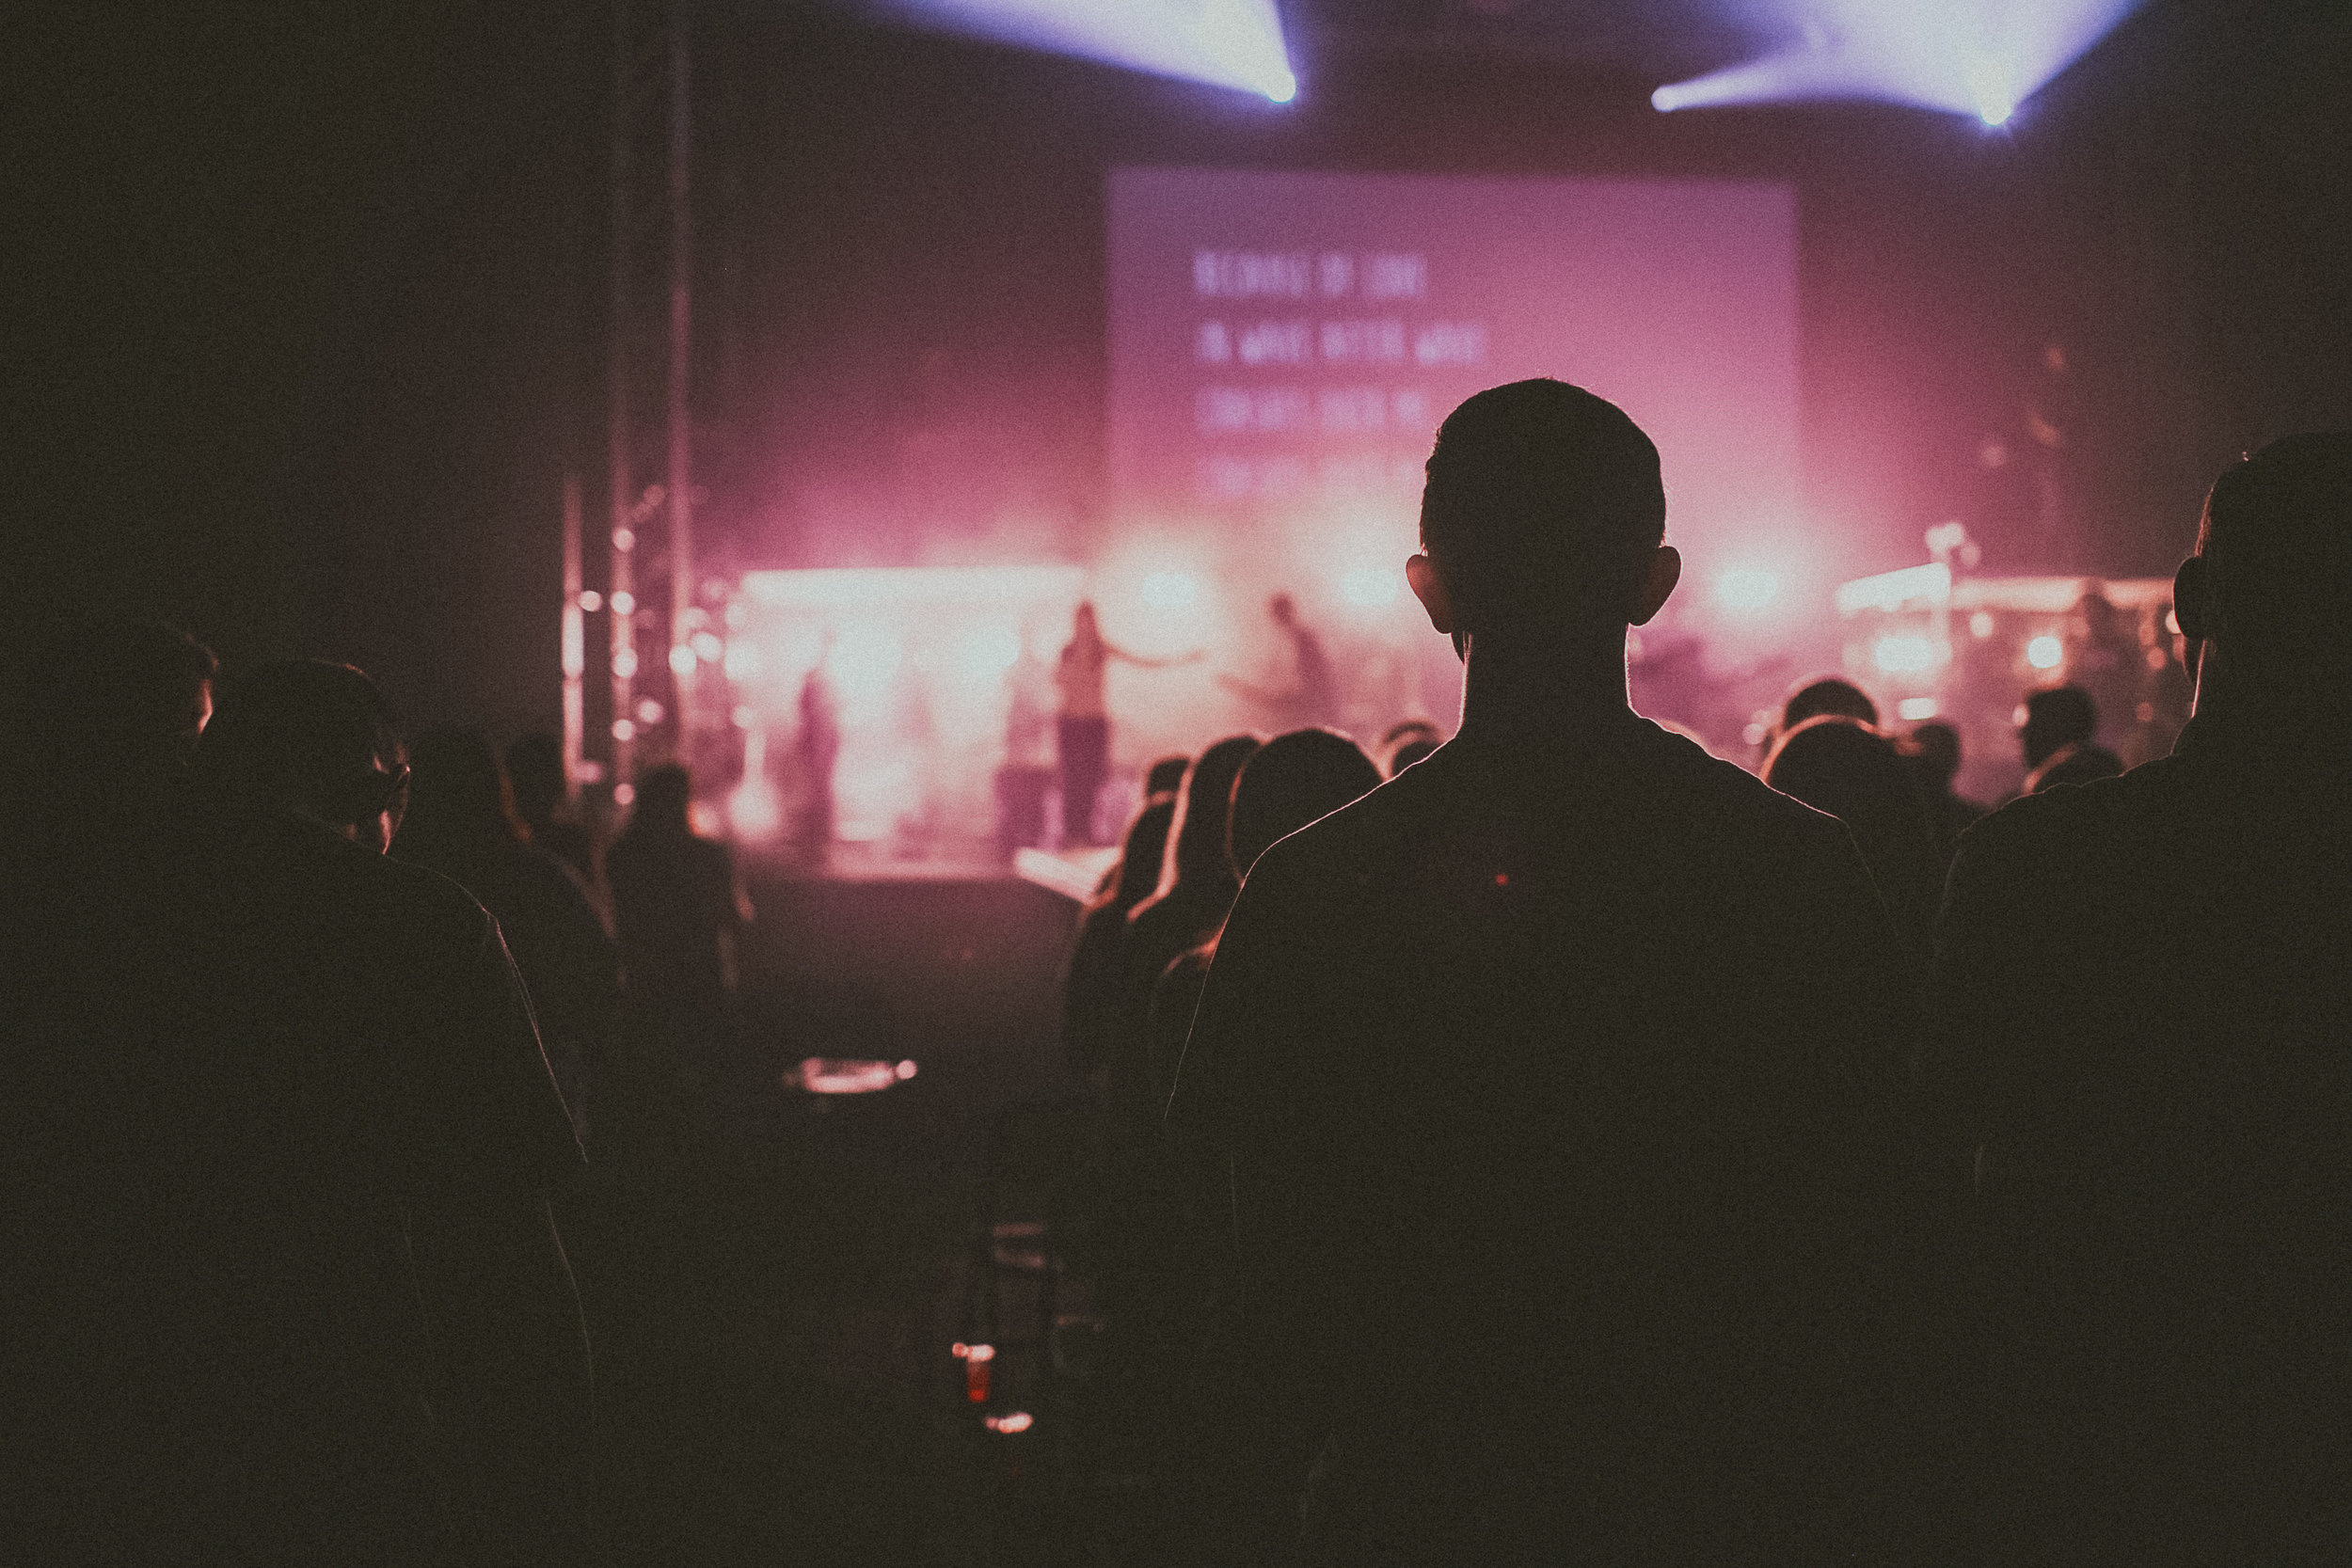 …the greatest thing they could ever do is to create a legacy: a generational echo that lifts up the name of Jesus. -